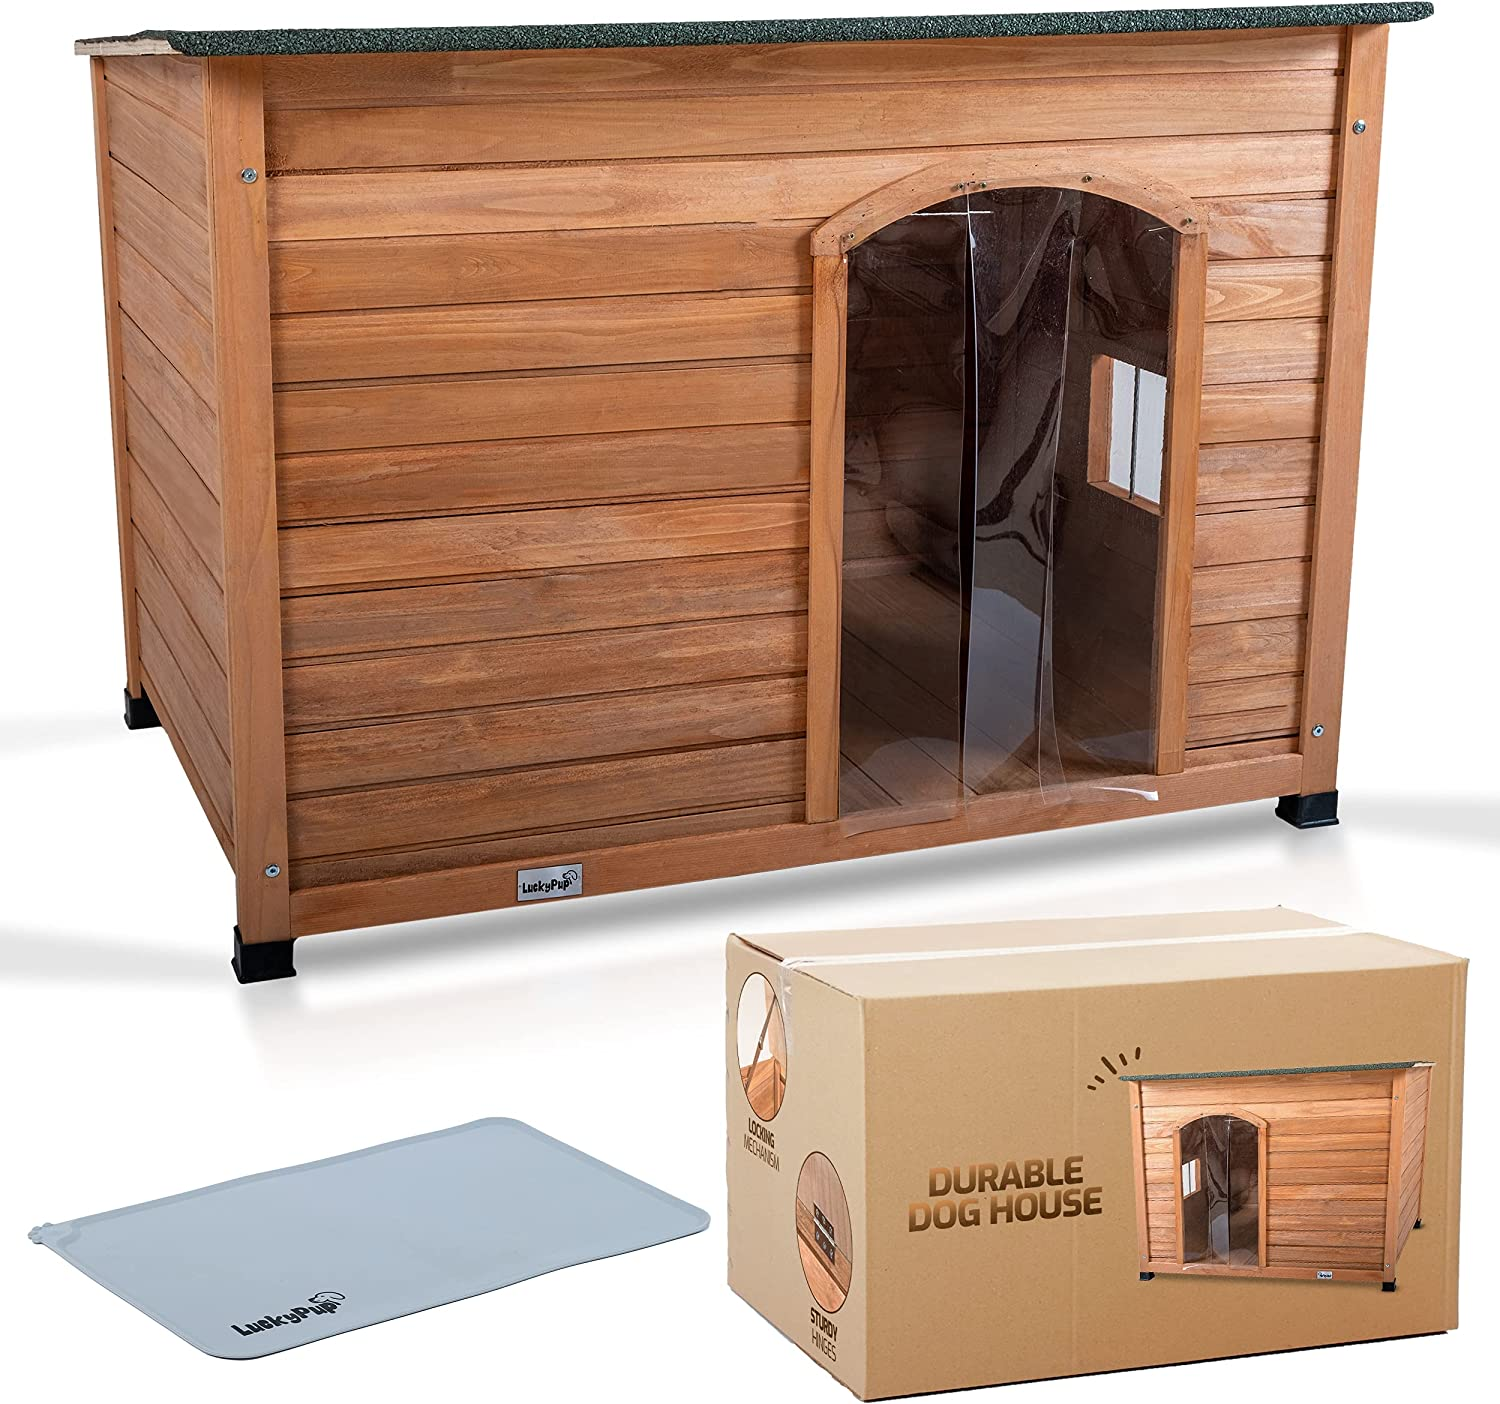 LuckyPup Wooden List price Dog House Dogs Very popular Insulated for Medium